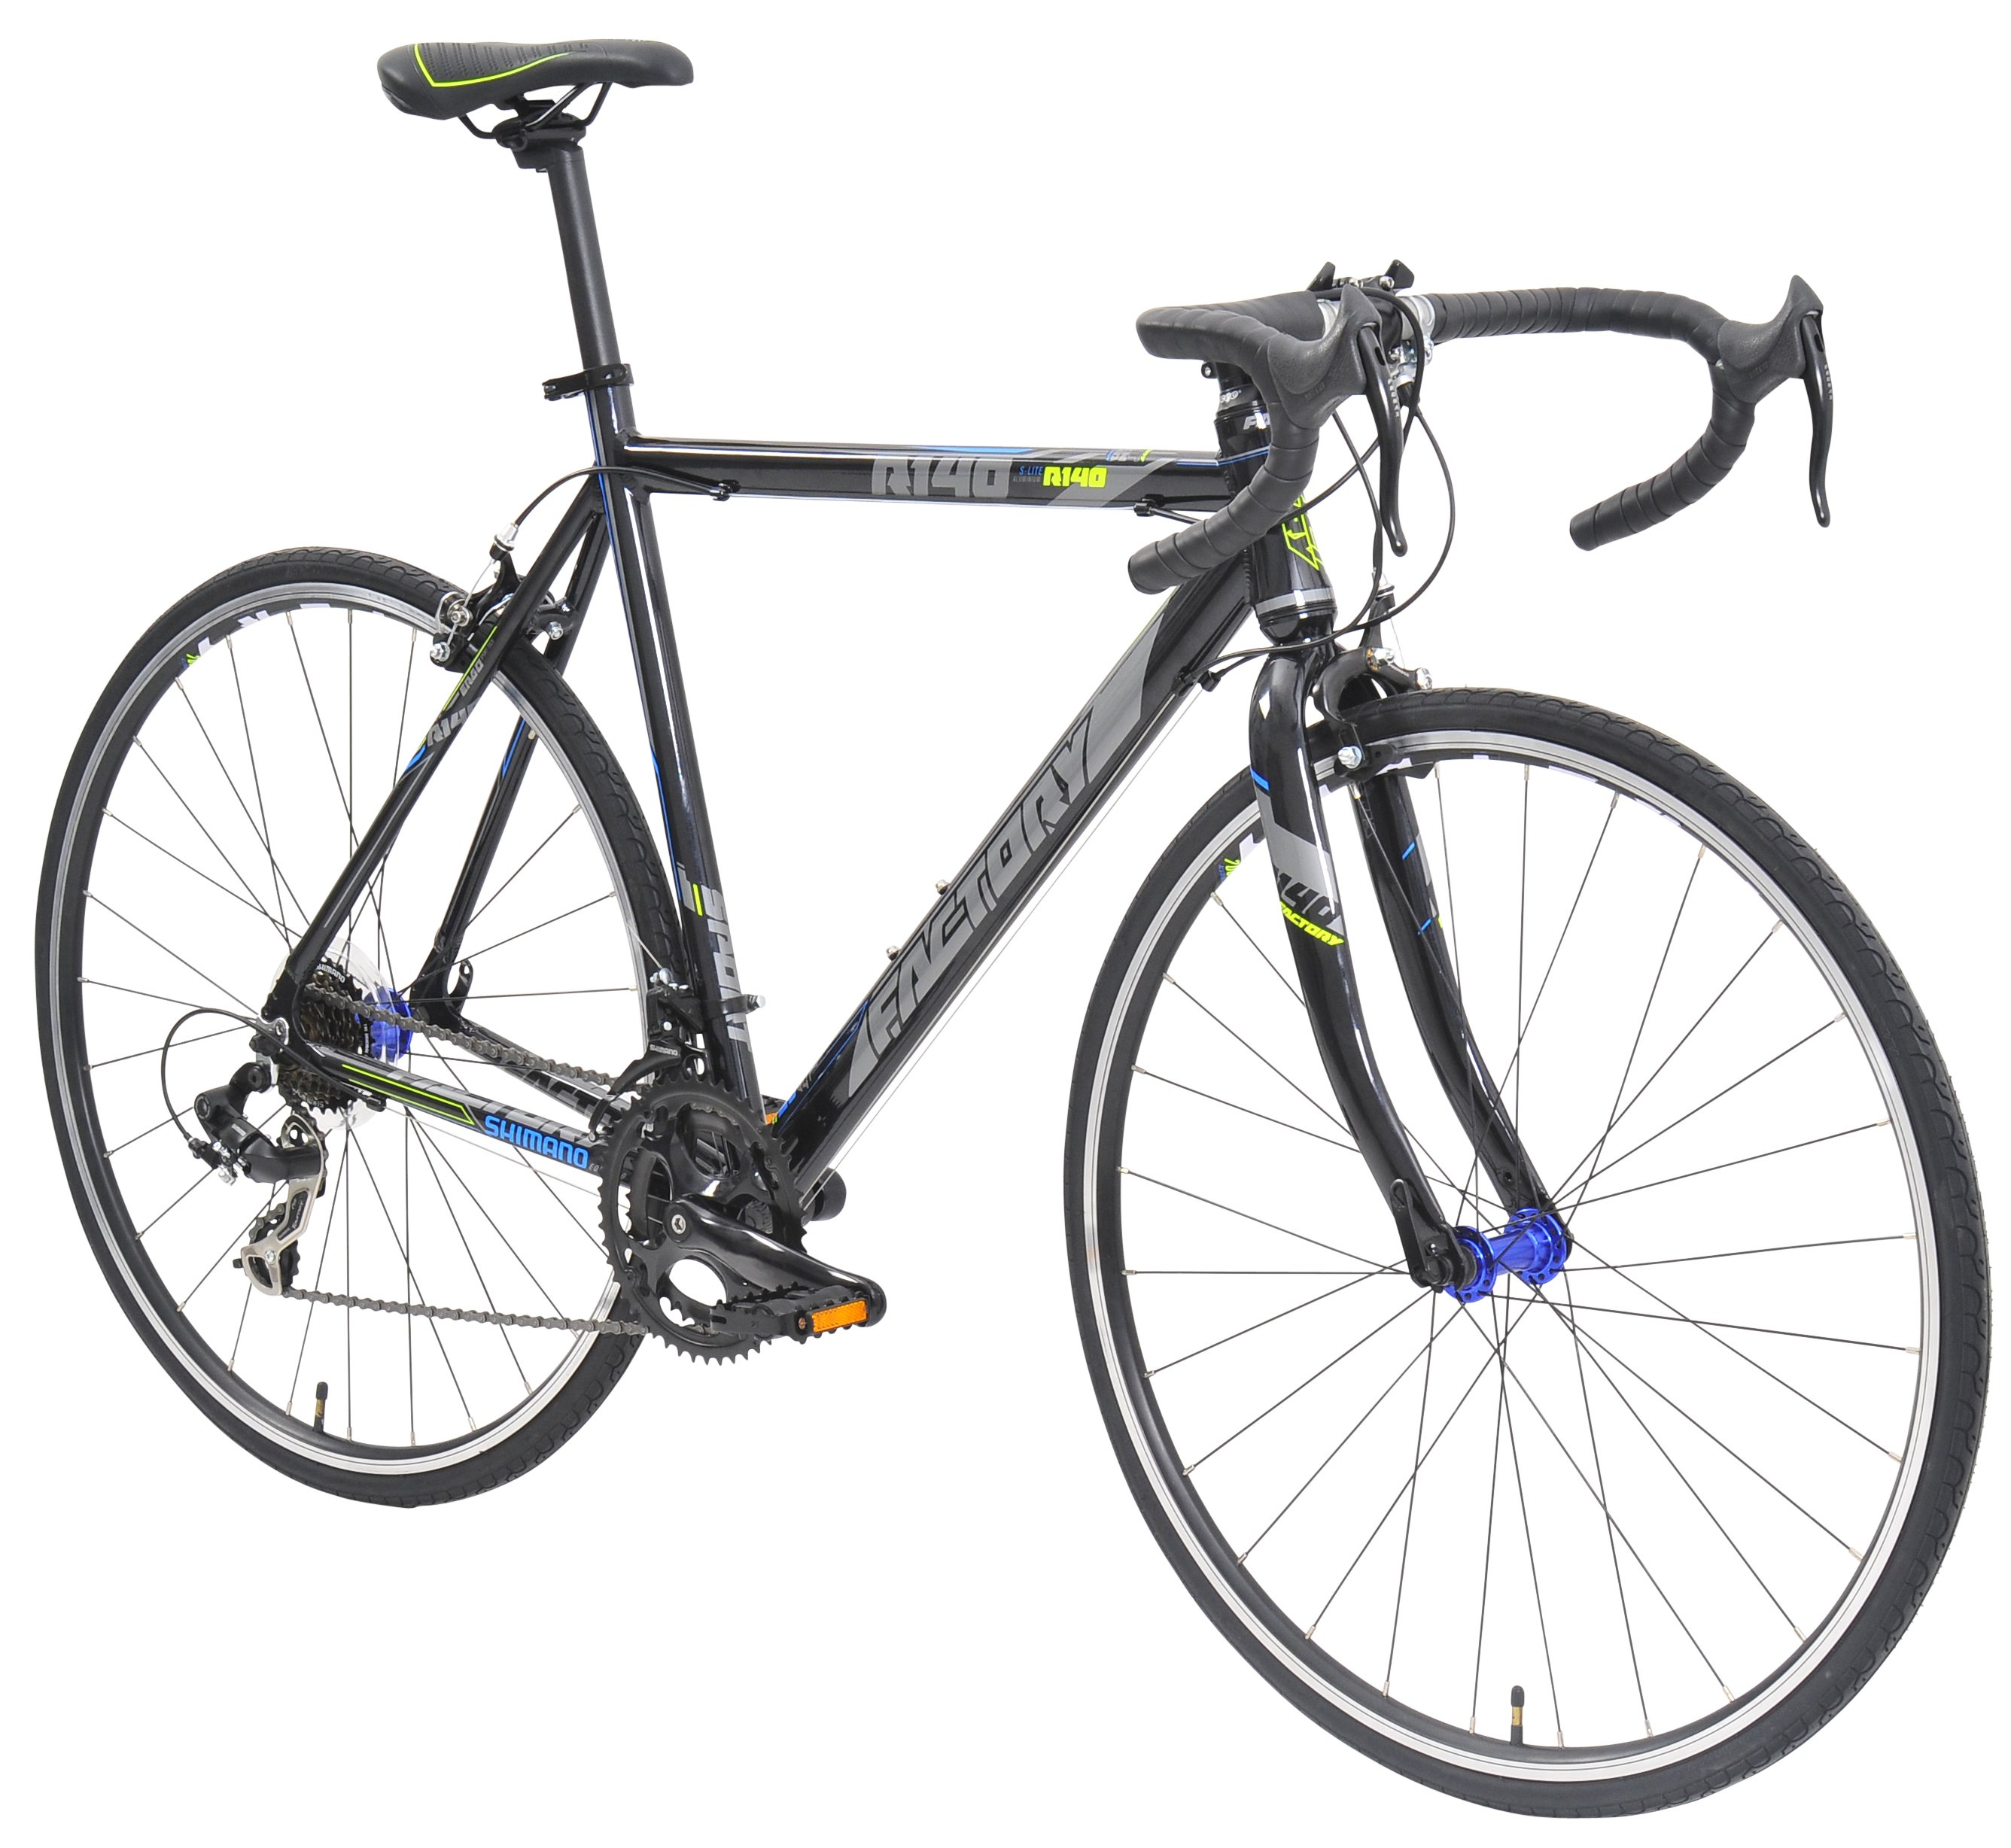 Factory Bicycles R140 14 Speed Road Bike Black / Yellow